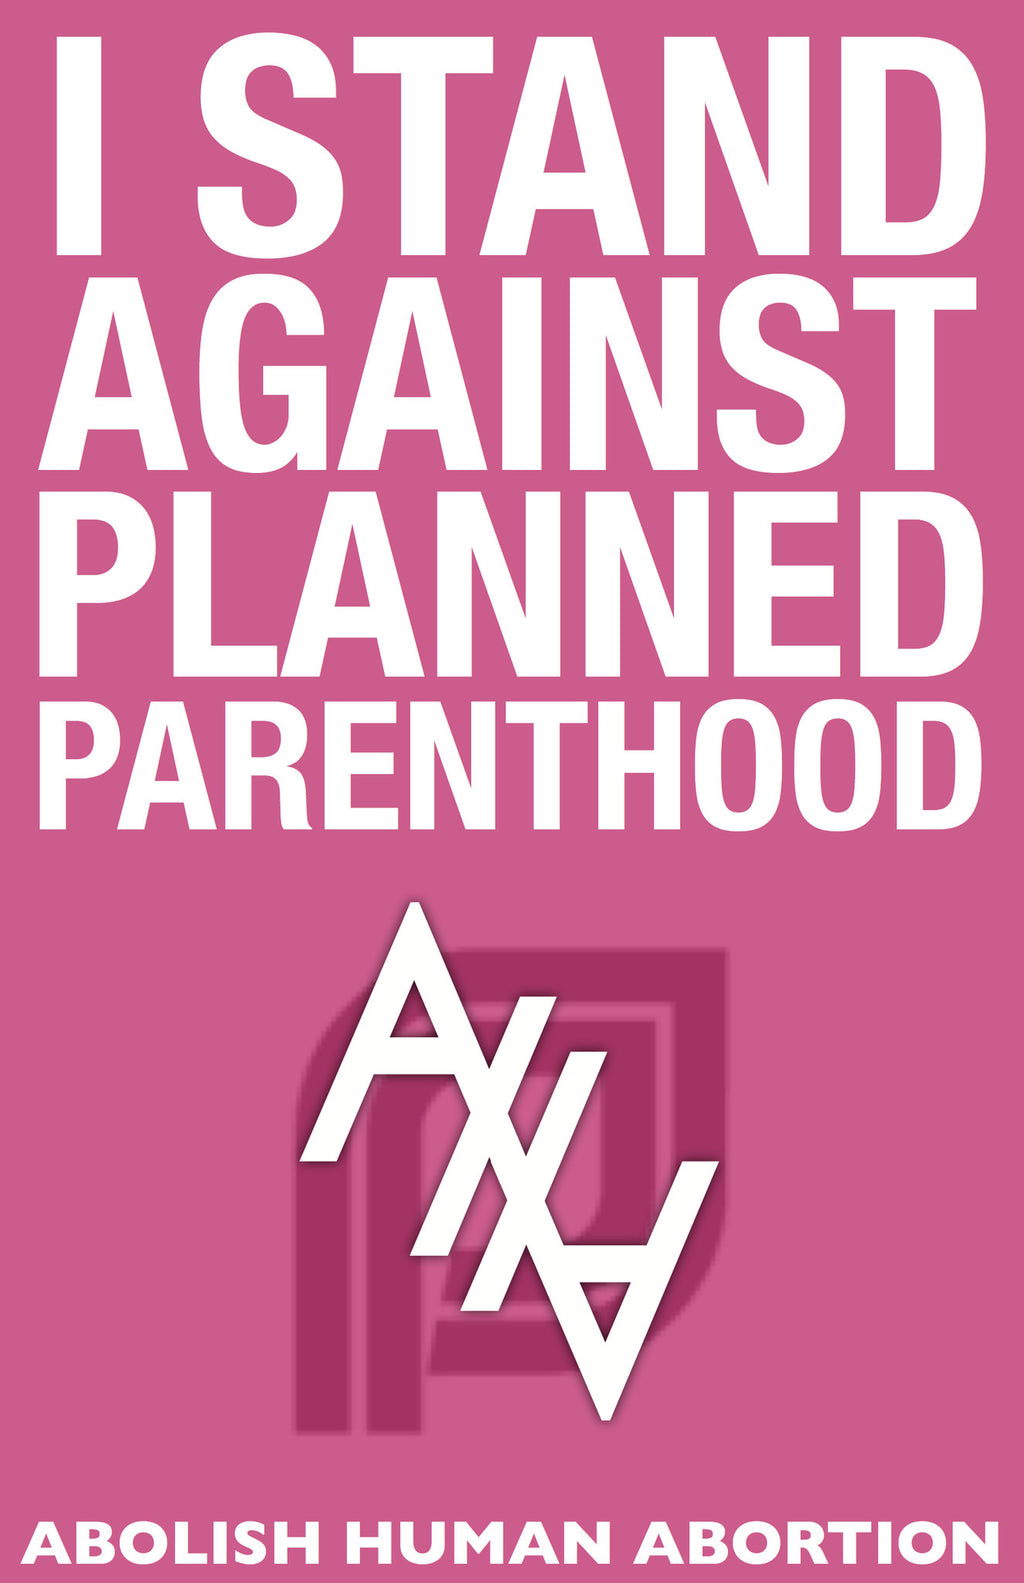 I Stand Against Planned Parenthood Sign